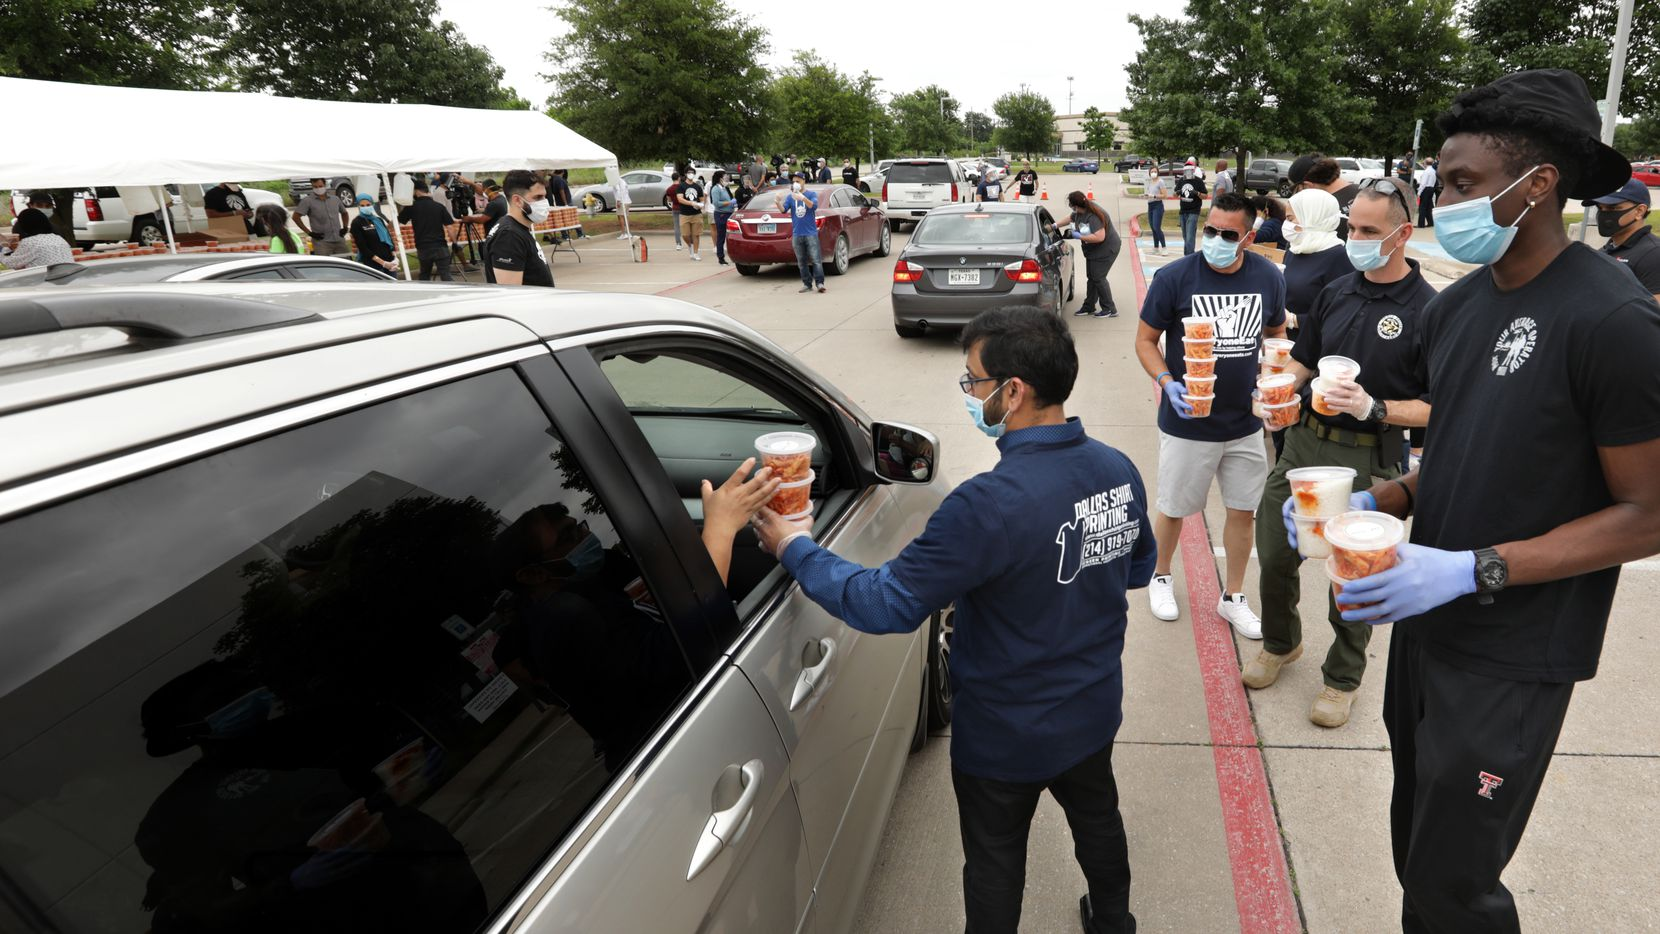 The May 15 event in Frisco provided 6,000 meals and masks for people affected by the COVID-19 pandemic.